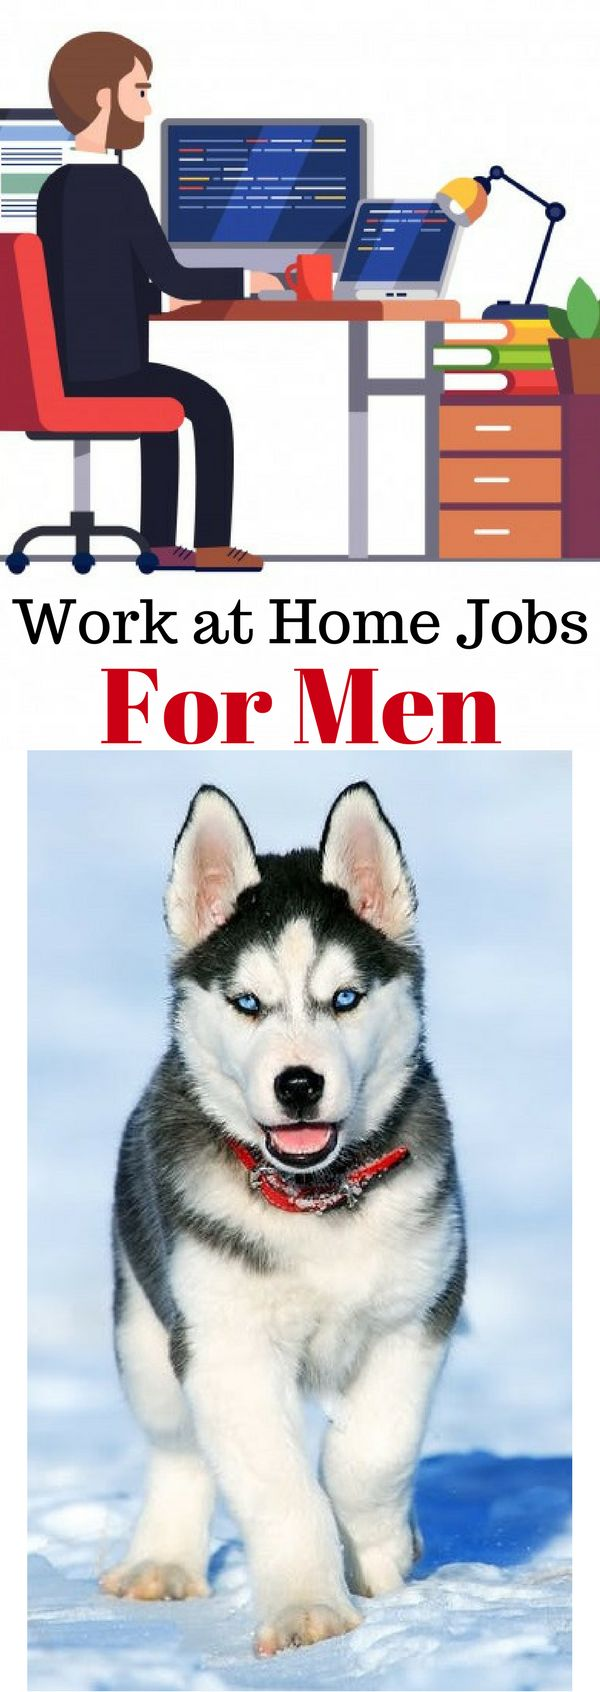 Work from Home Jobs for Men. Work at Home Jobs for Men. Apply for Work from Home Jobs for Stay at Home Dads. We bring you the most Legitimate Work at Home Jobs for Stay at Home Dads. These are Work from Home Jobs for all Men. Apply and Start working from home